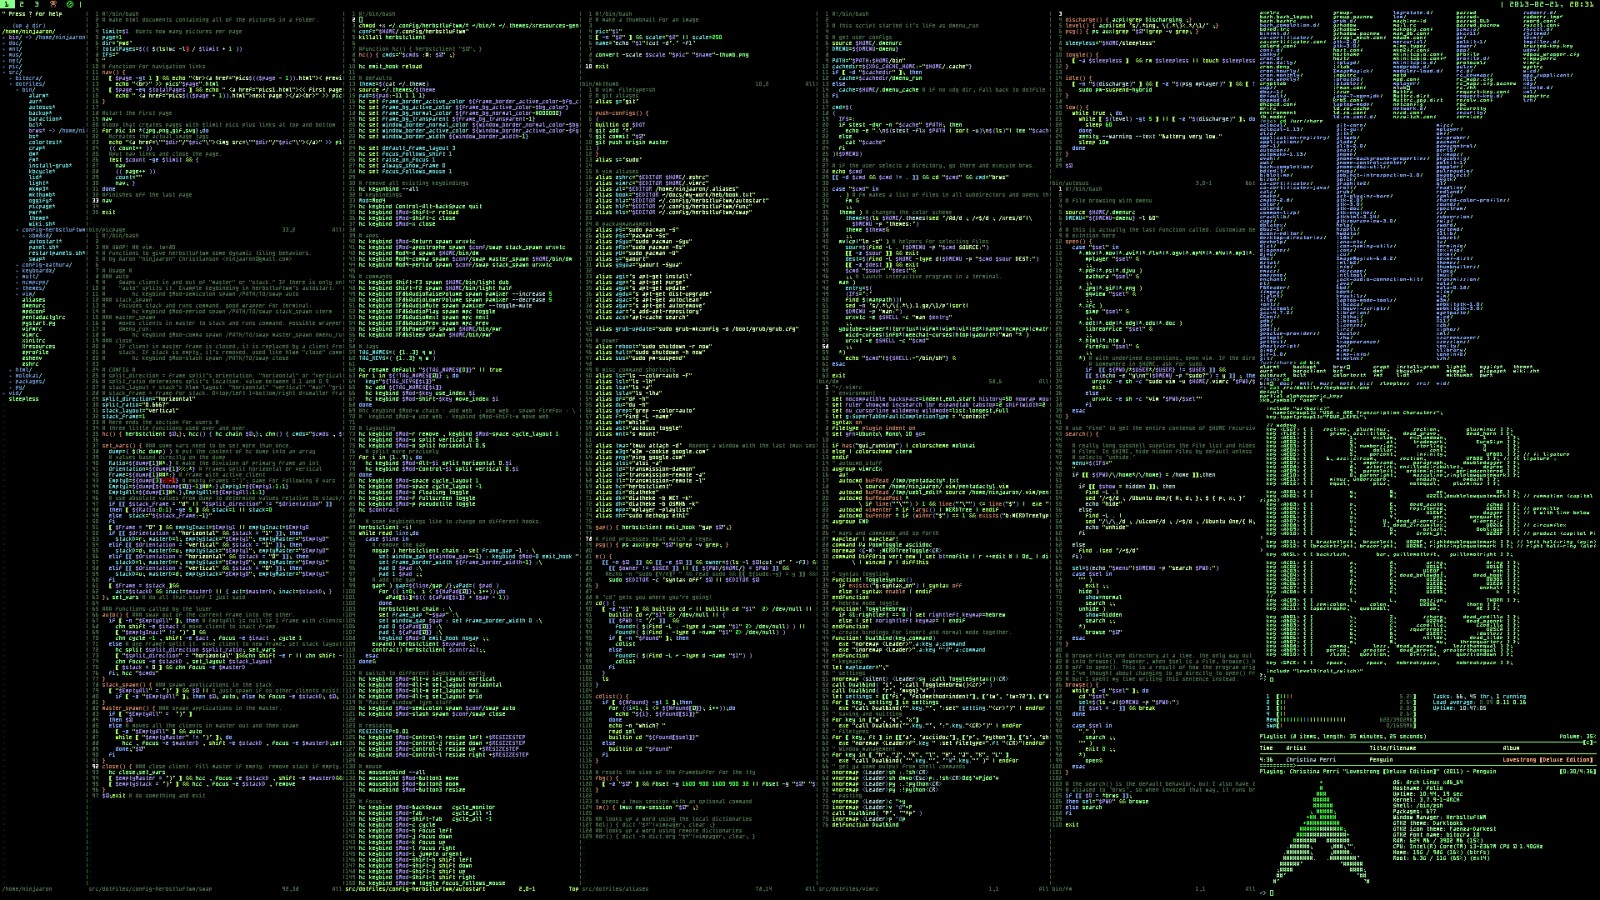 37 Programmer Code Wallpaper Backgrounds Free Download